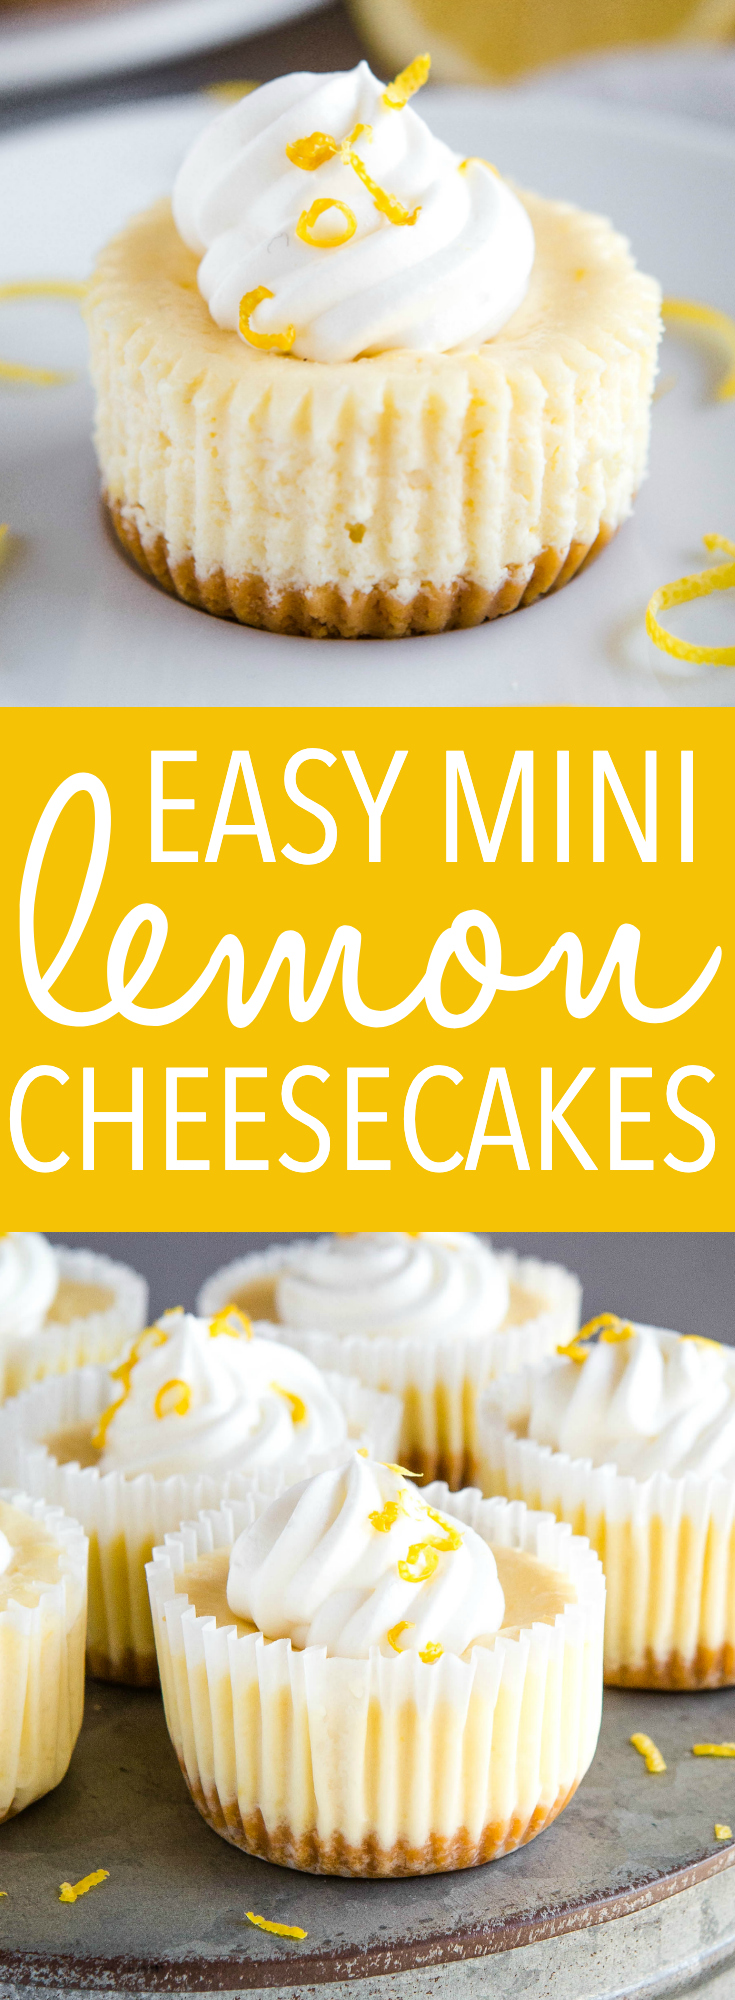 These Easy Mini Lemon Cheesecakes are the perfect easy dessert for spring! Just a few simple ingredients, an easy cookie crust and a fluffy cheesecake filling that's bursting with citrus! Recipe from thebusybaker.ca! #lemon #cheesecake #dessert #sweet #homemade #baking #mini #singleserving #citrus via @busybakerblog